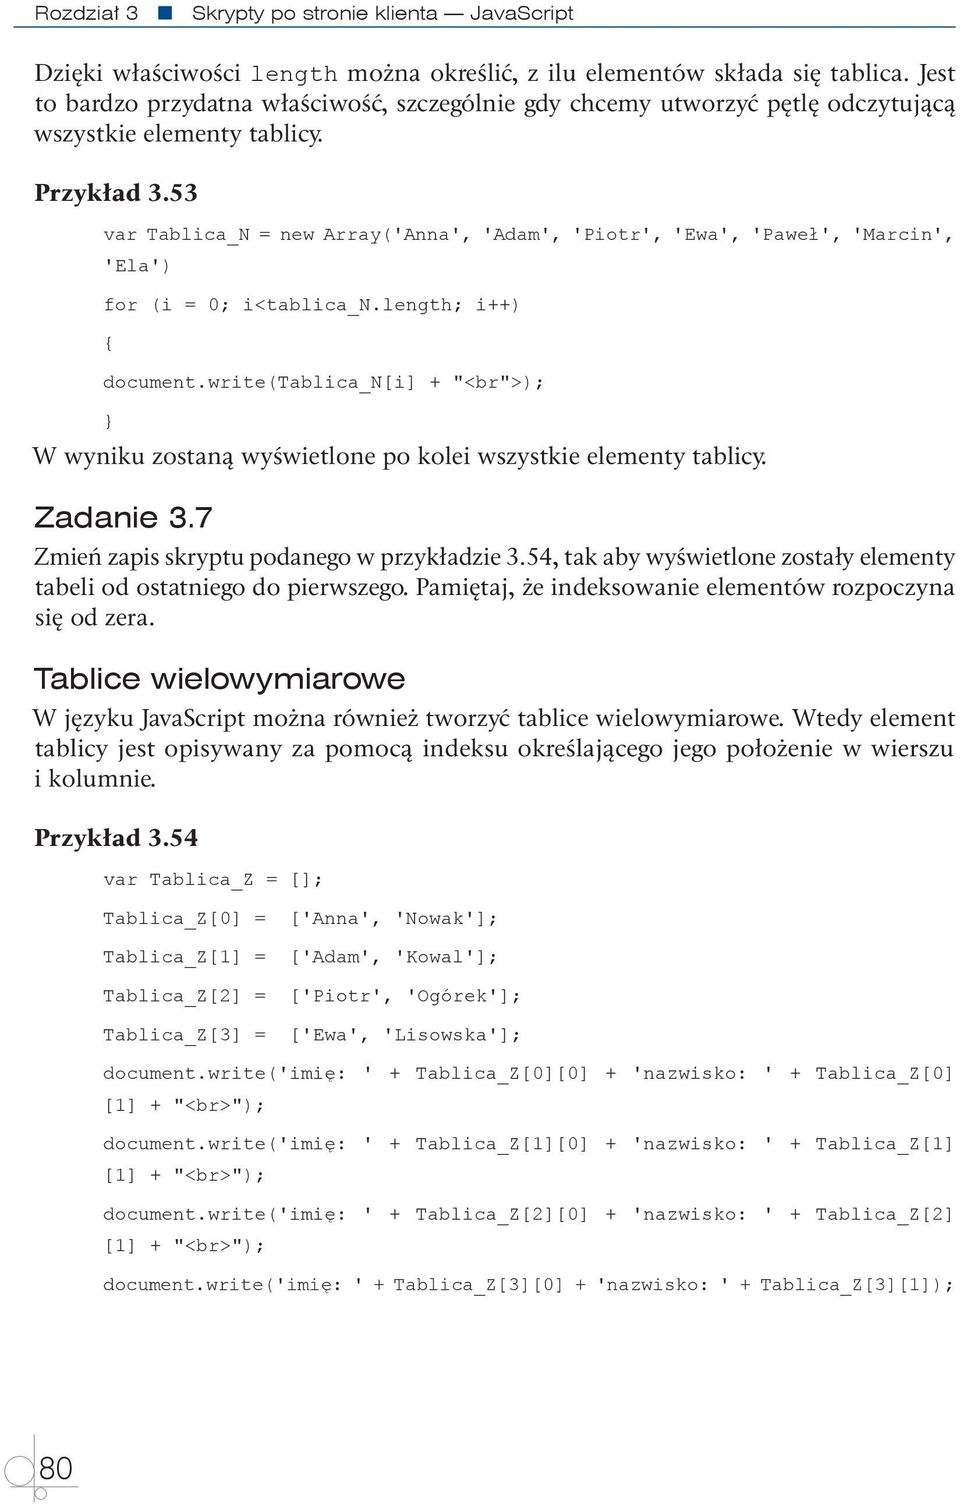 53 var Tablica_N = new Array('Anna', 'Adam', 'Piotr', 'Ewa', 'Paweł', 'Marcin', 'Ela') for (i = 0; i<tablica_n.length; i++) { document.